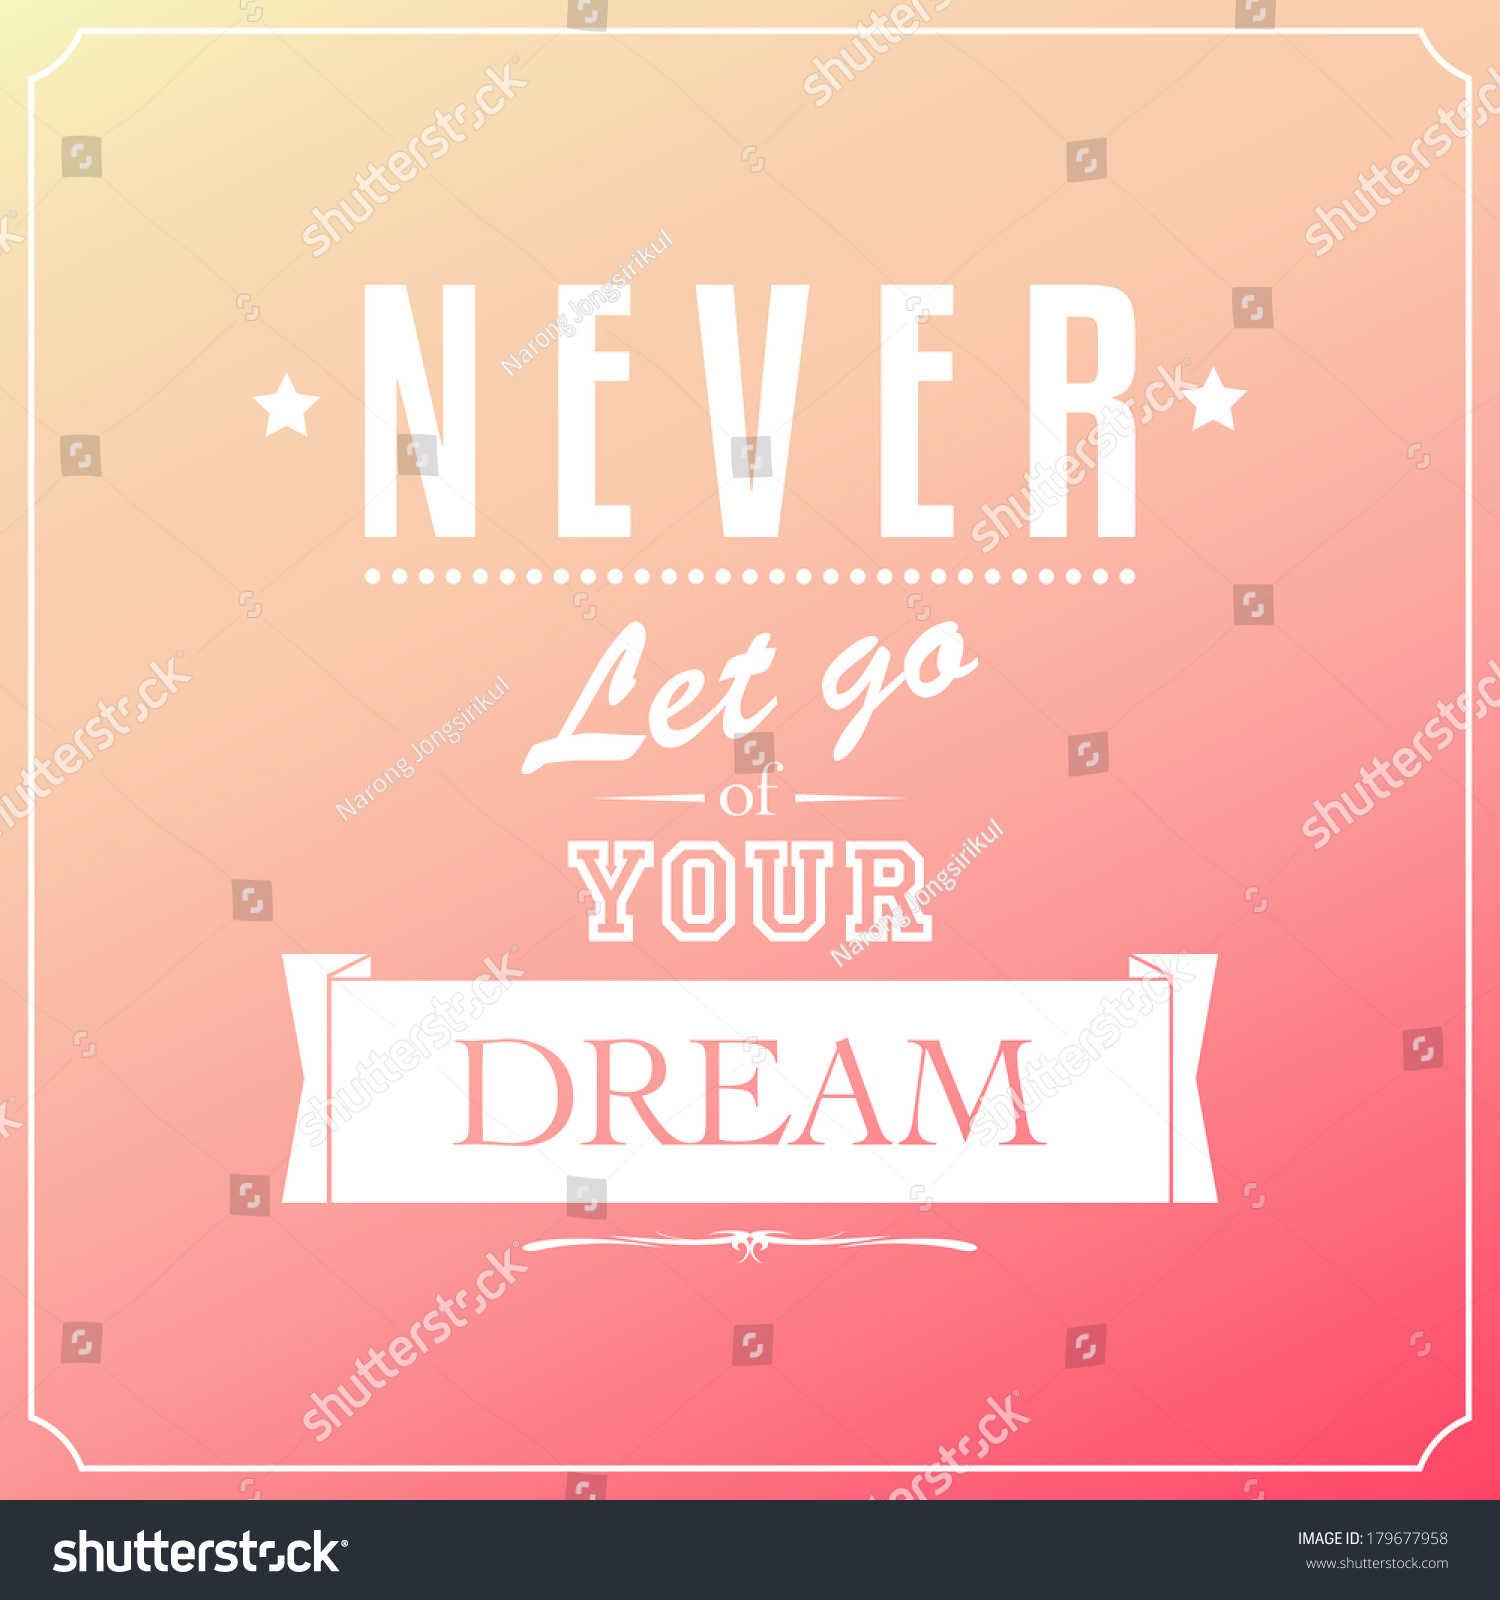 Dream Quotes Never Let Go Your Dream Quotes Stock Vector 179677958  Shutterstock